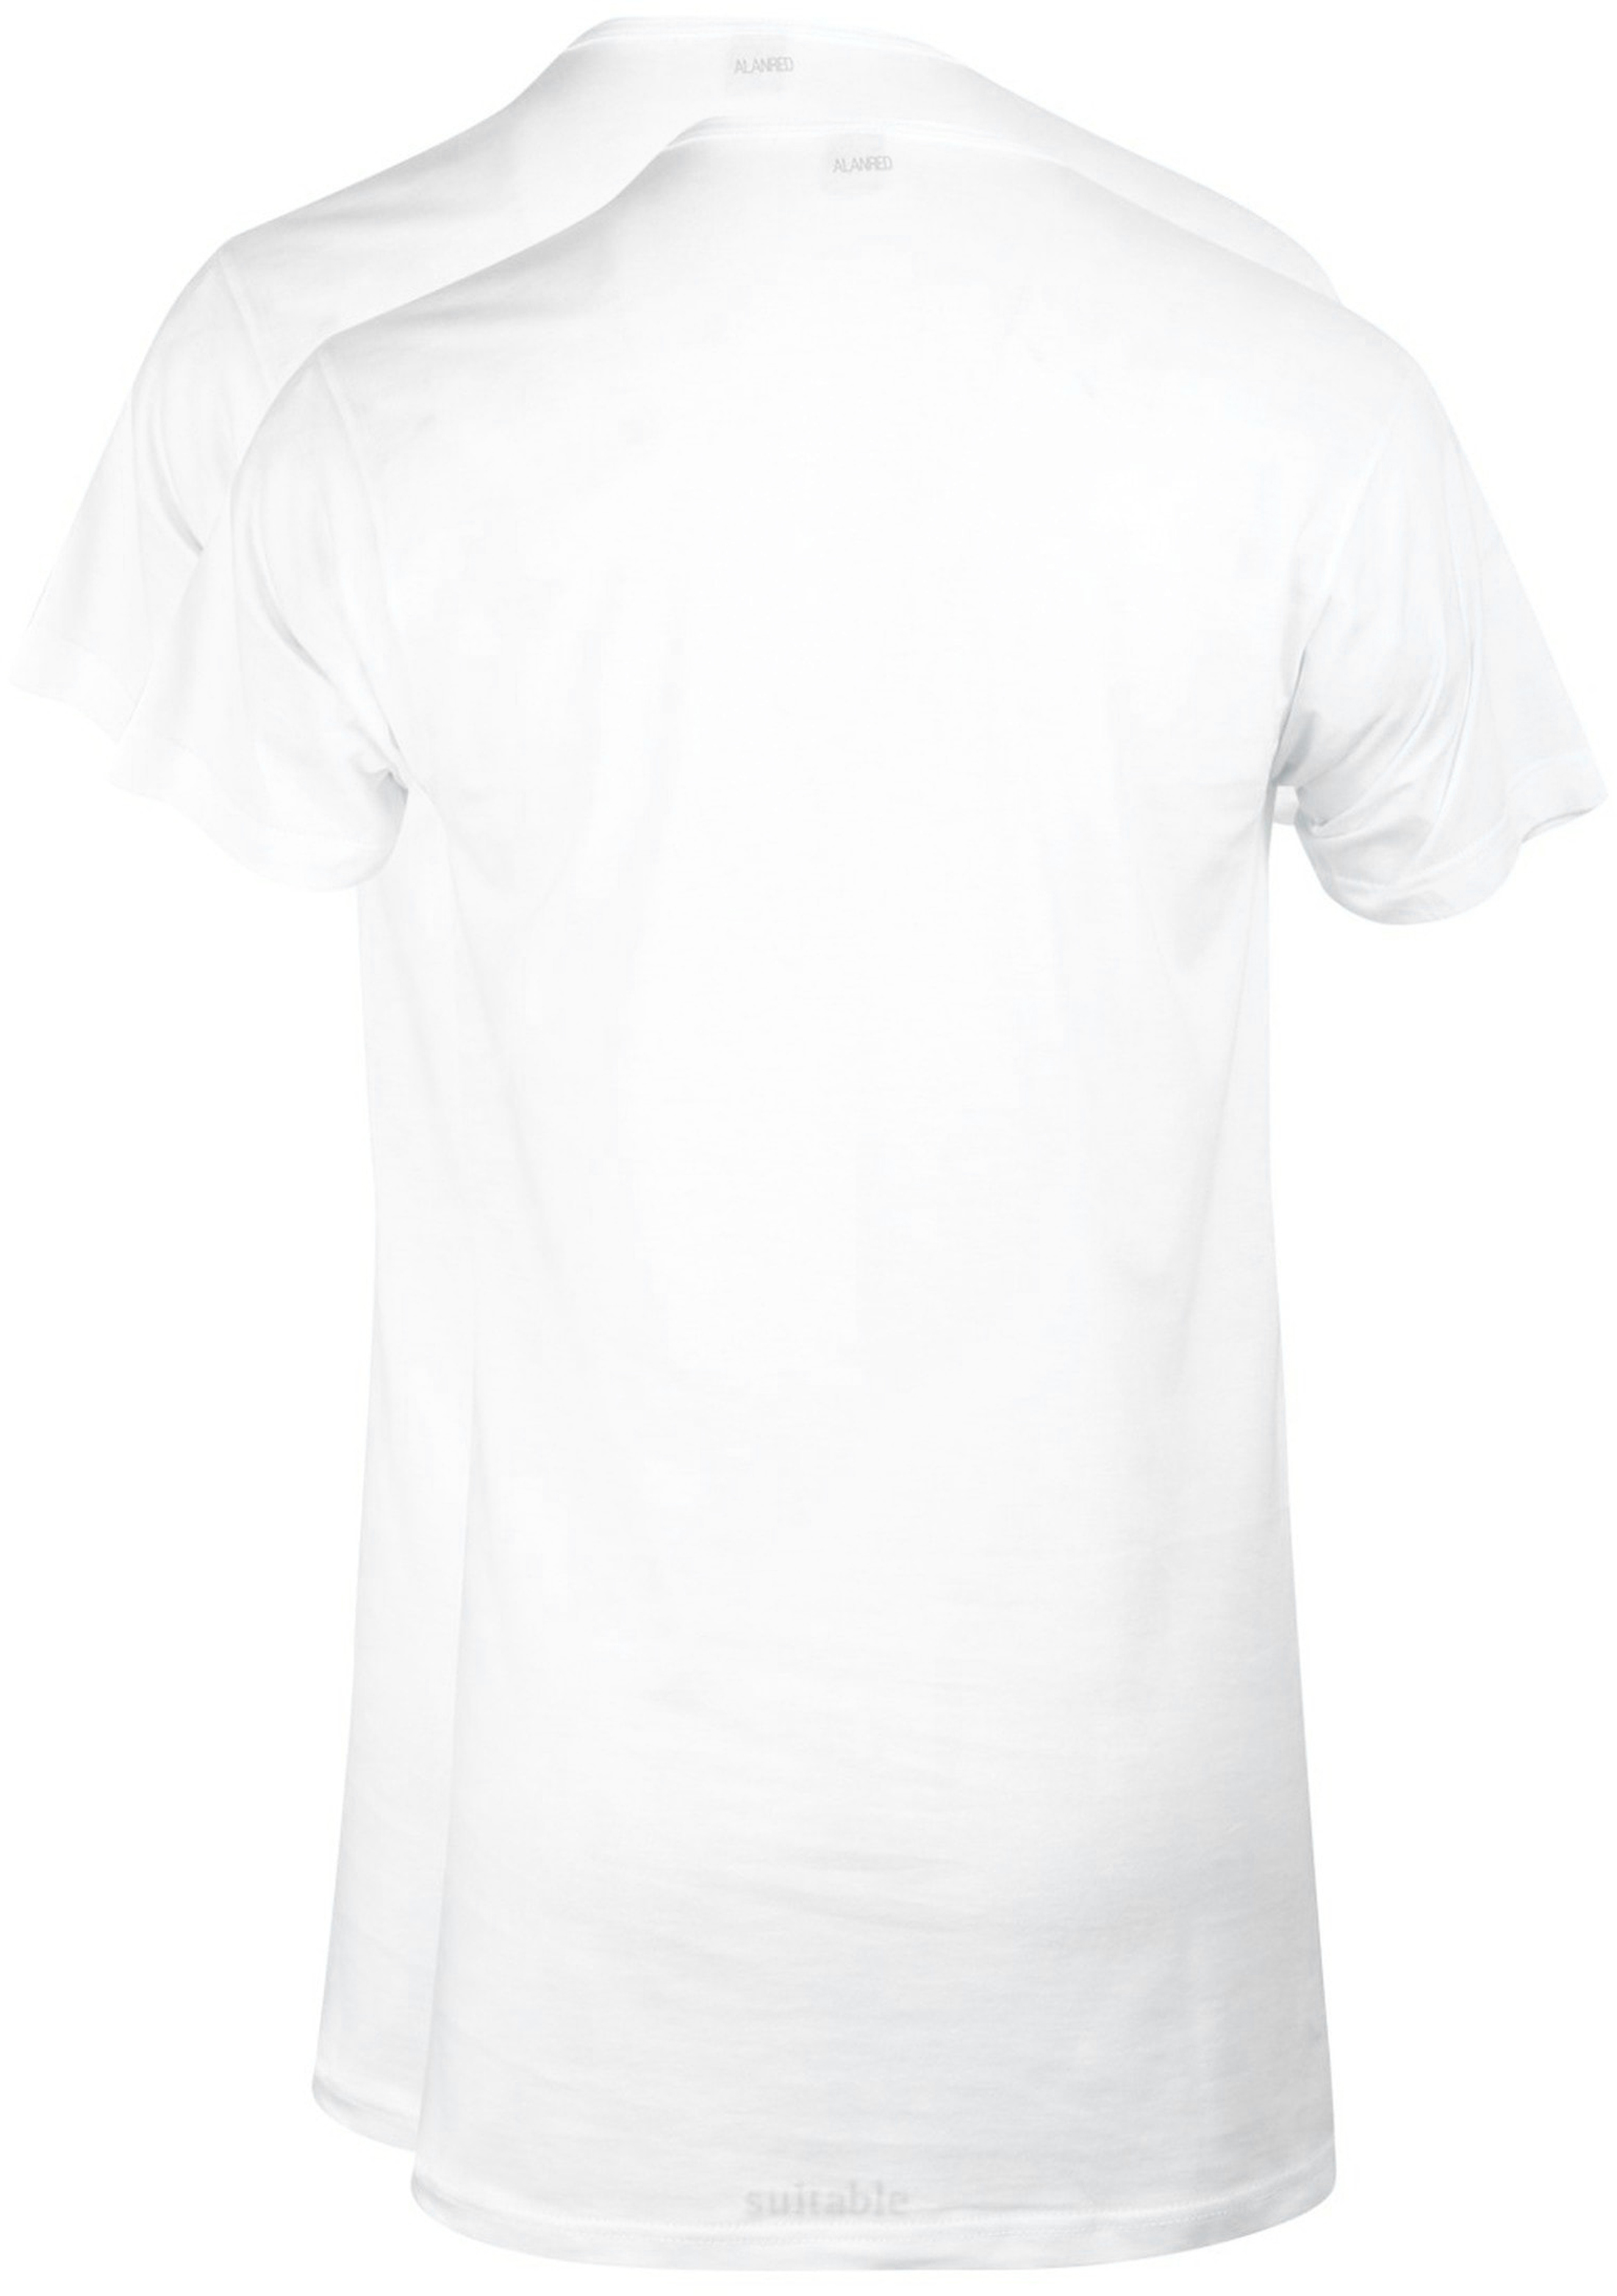 Alan Red Derby Extra Long T-shirt White 2-Pack foto 2